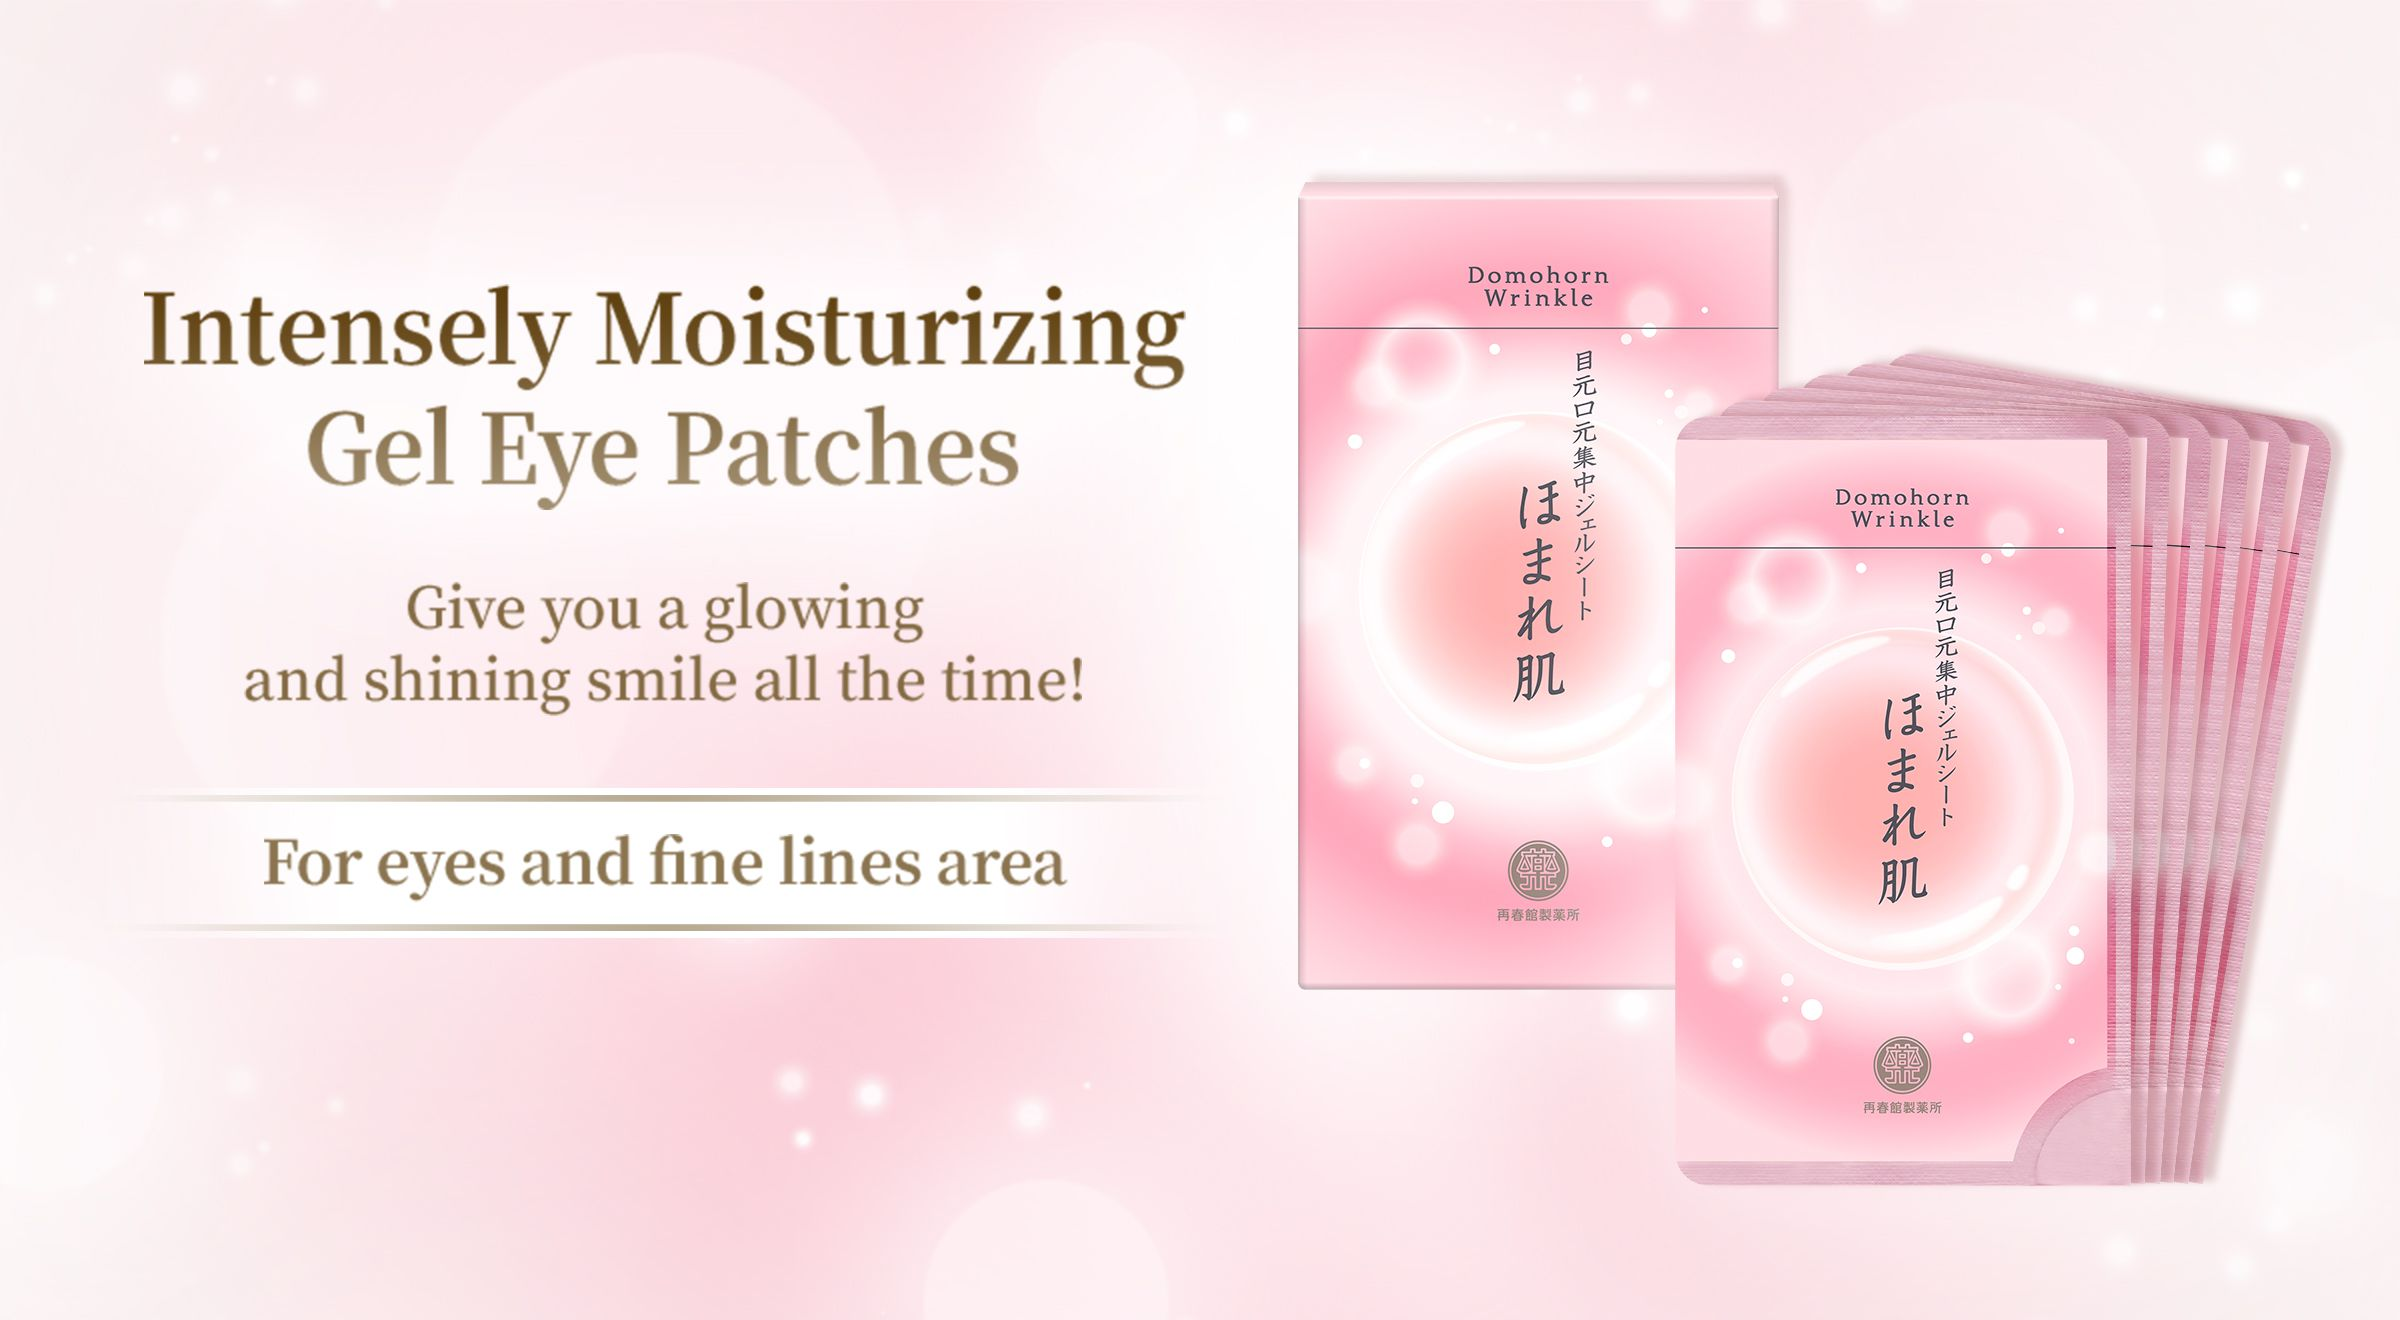 Intensely Moisturizing Gel Eye Patches Give you a glowing and shining smile all the time! For eyes and fine lines area